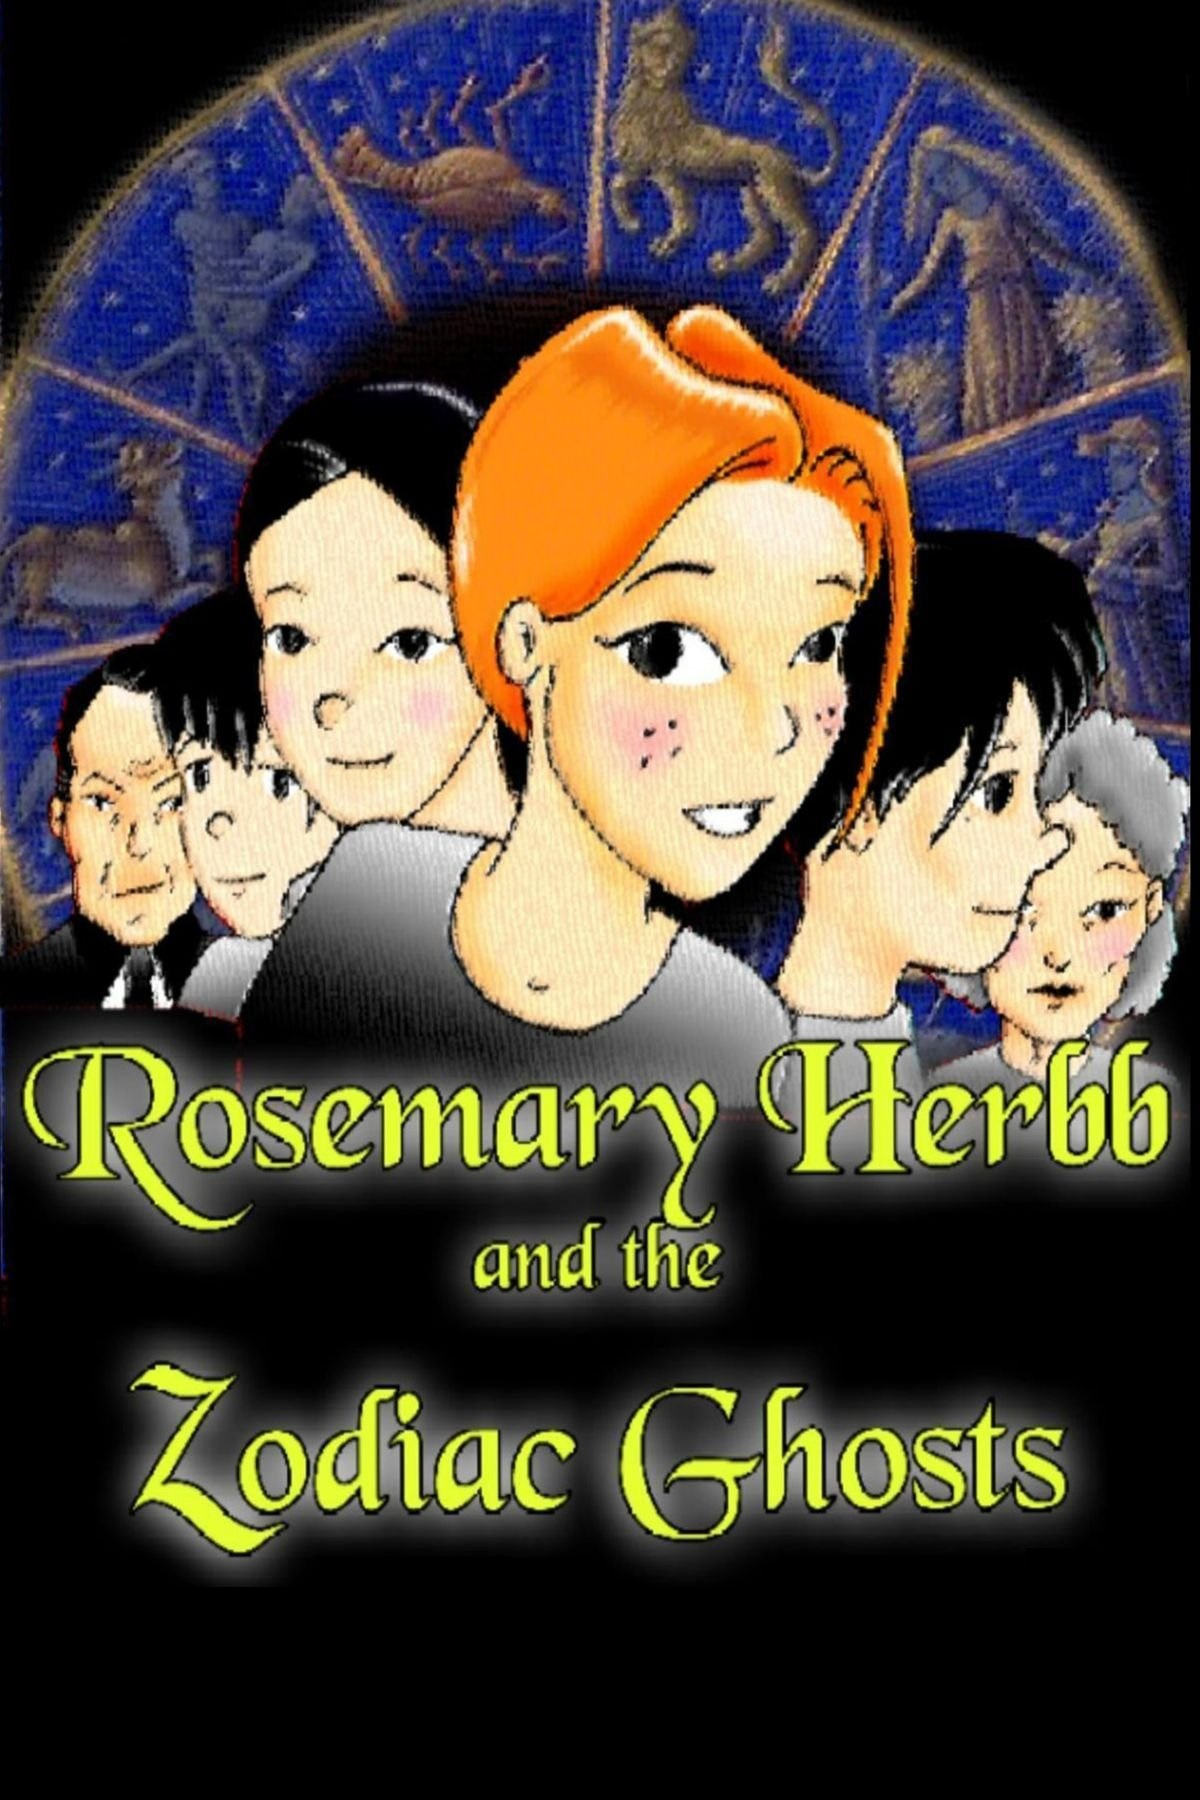 Rosemary Herbb and the Zodiac Ghosts